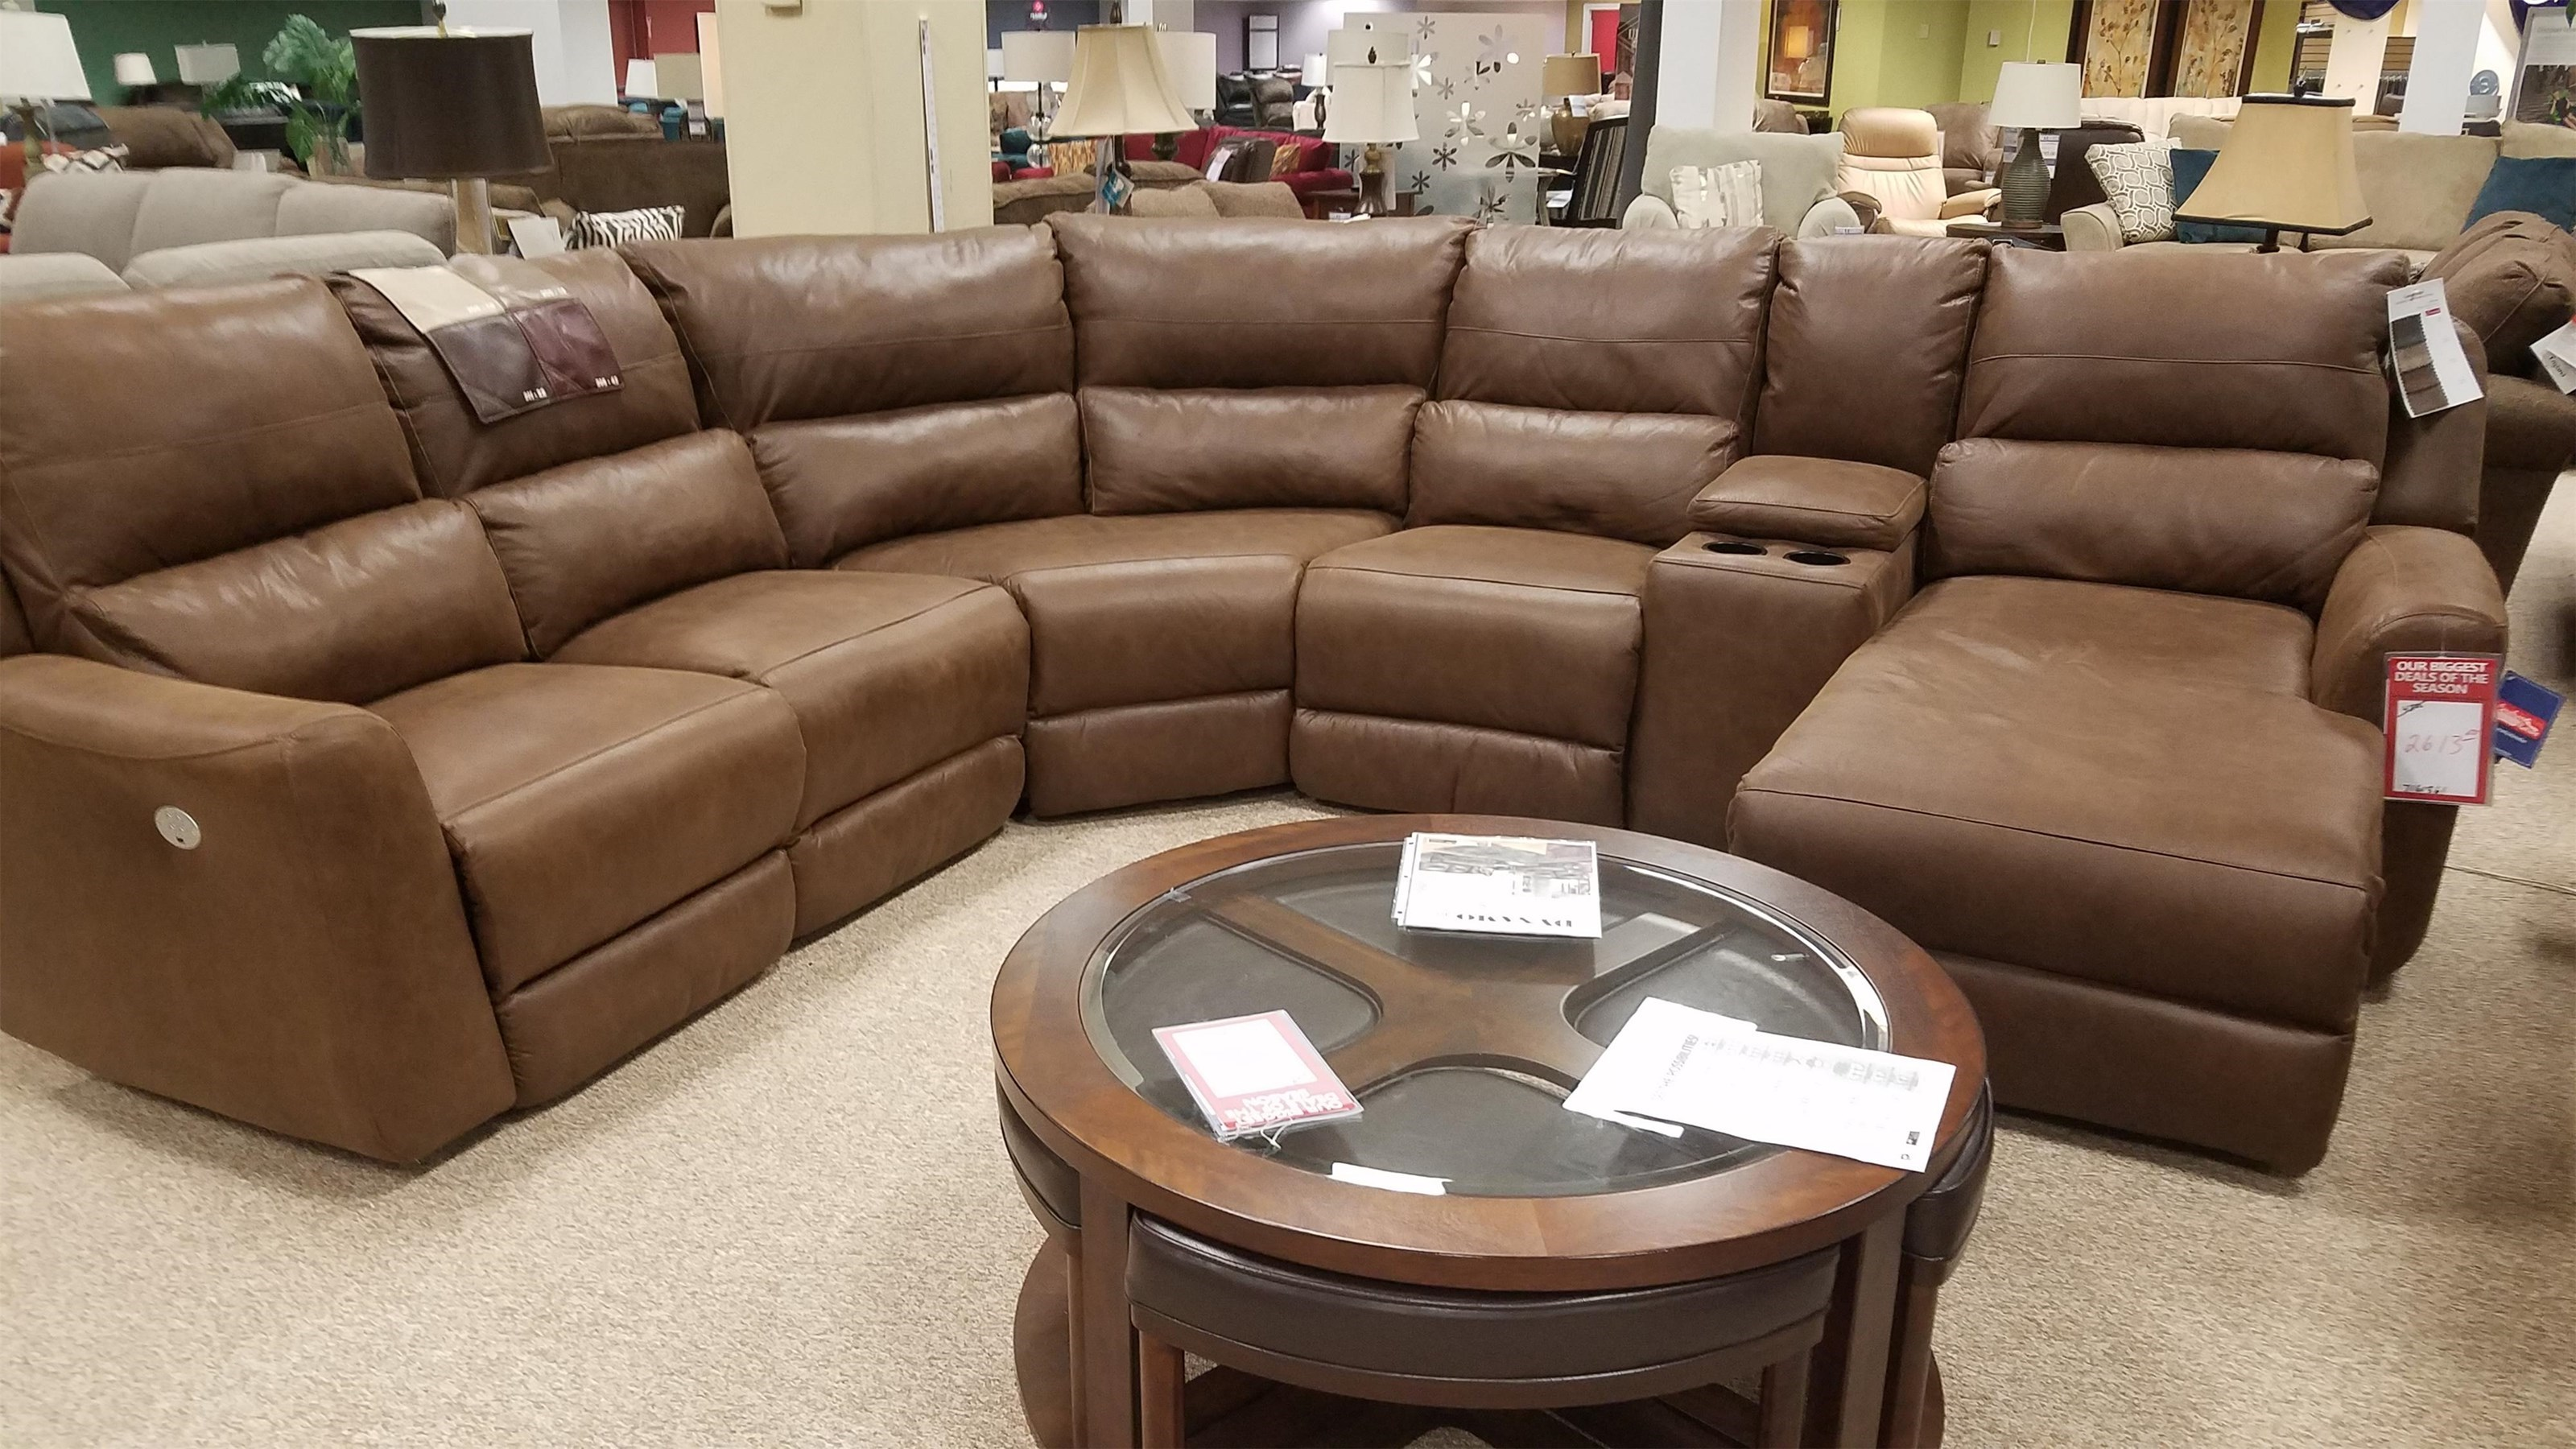 Southern Motion Producer 6-Piece Power Reclining Sectional with Power Headrest and Chaise - Dunk u0026 Bright Furniture - Reclining Sectional Sofas  sc 1 st  Dunk u0026 Bright Furniture & Southern Motion Producer 6-Piece Power Reclining Sectional with ... islam-shia.org